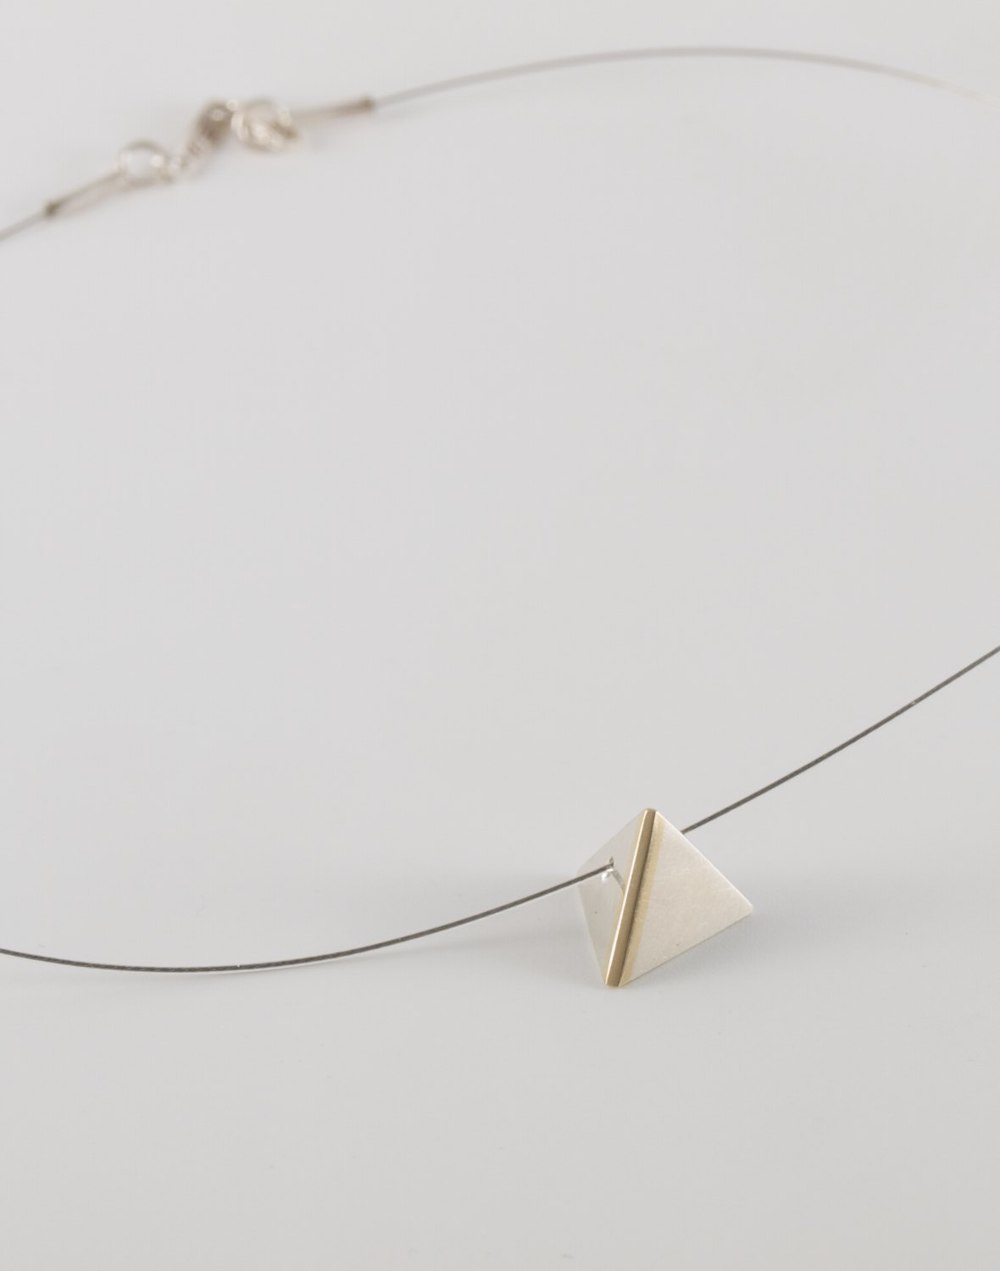 Pyramid Highlight pendant